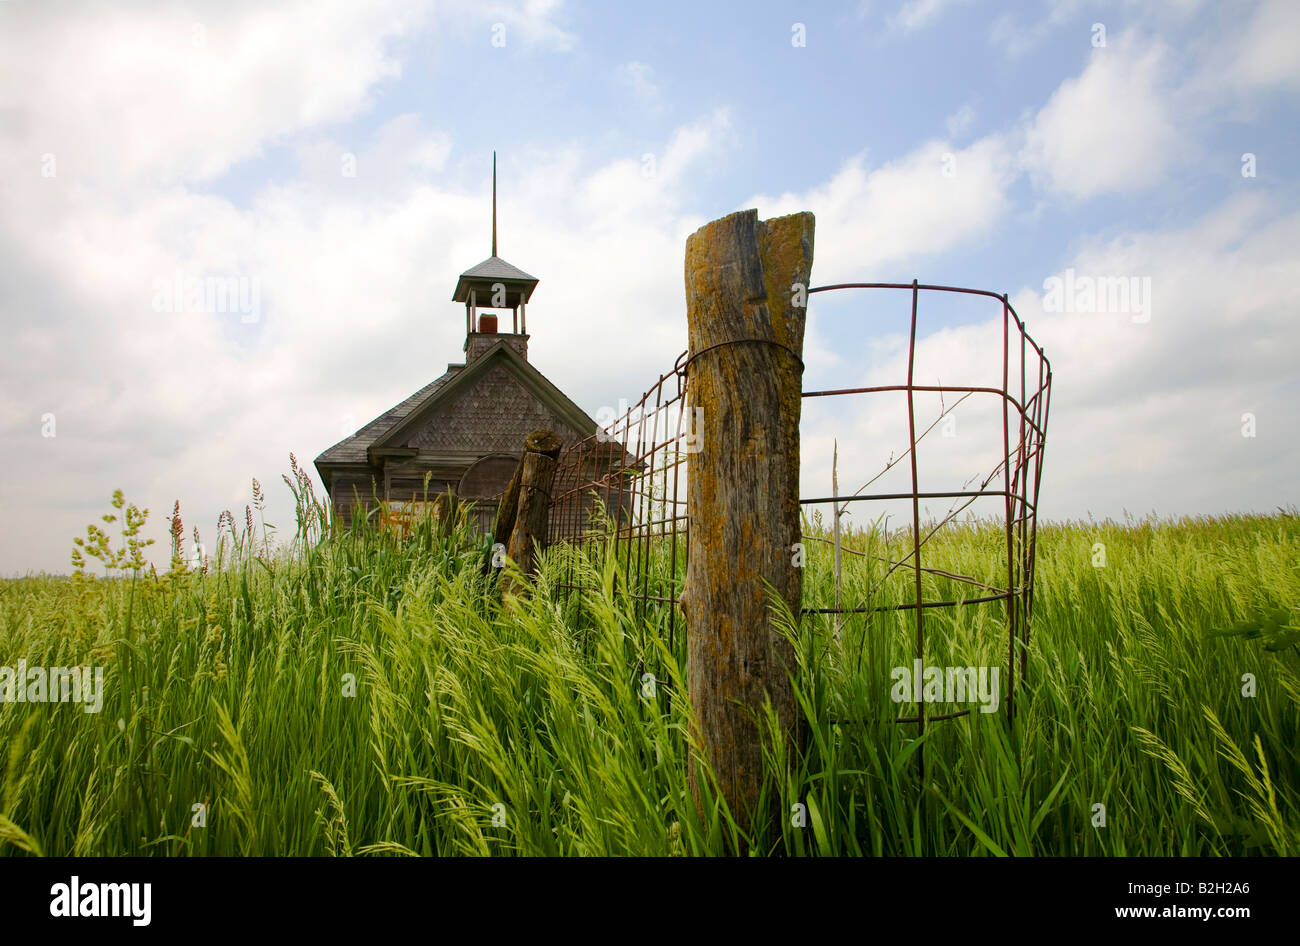 One room school house in the middle of fiield of tall grass Iowa USA - Stock Image